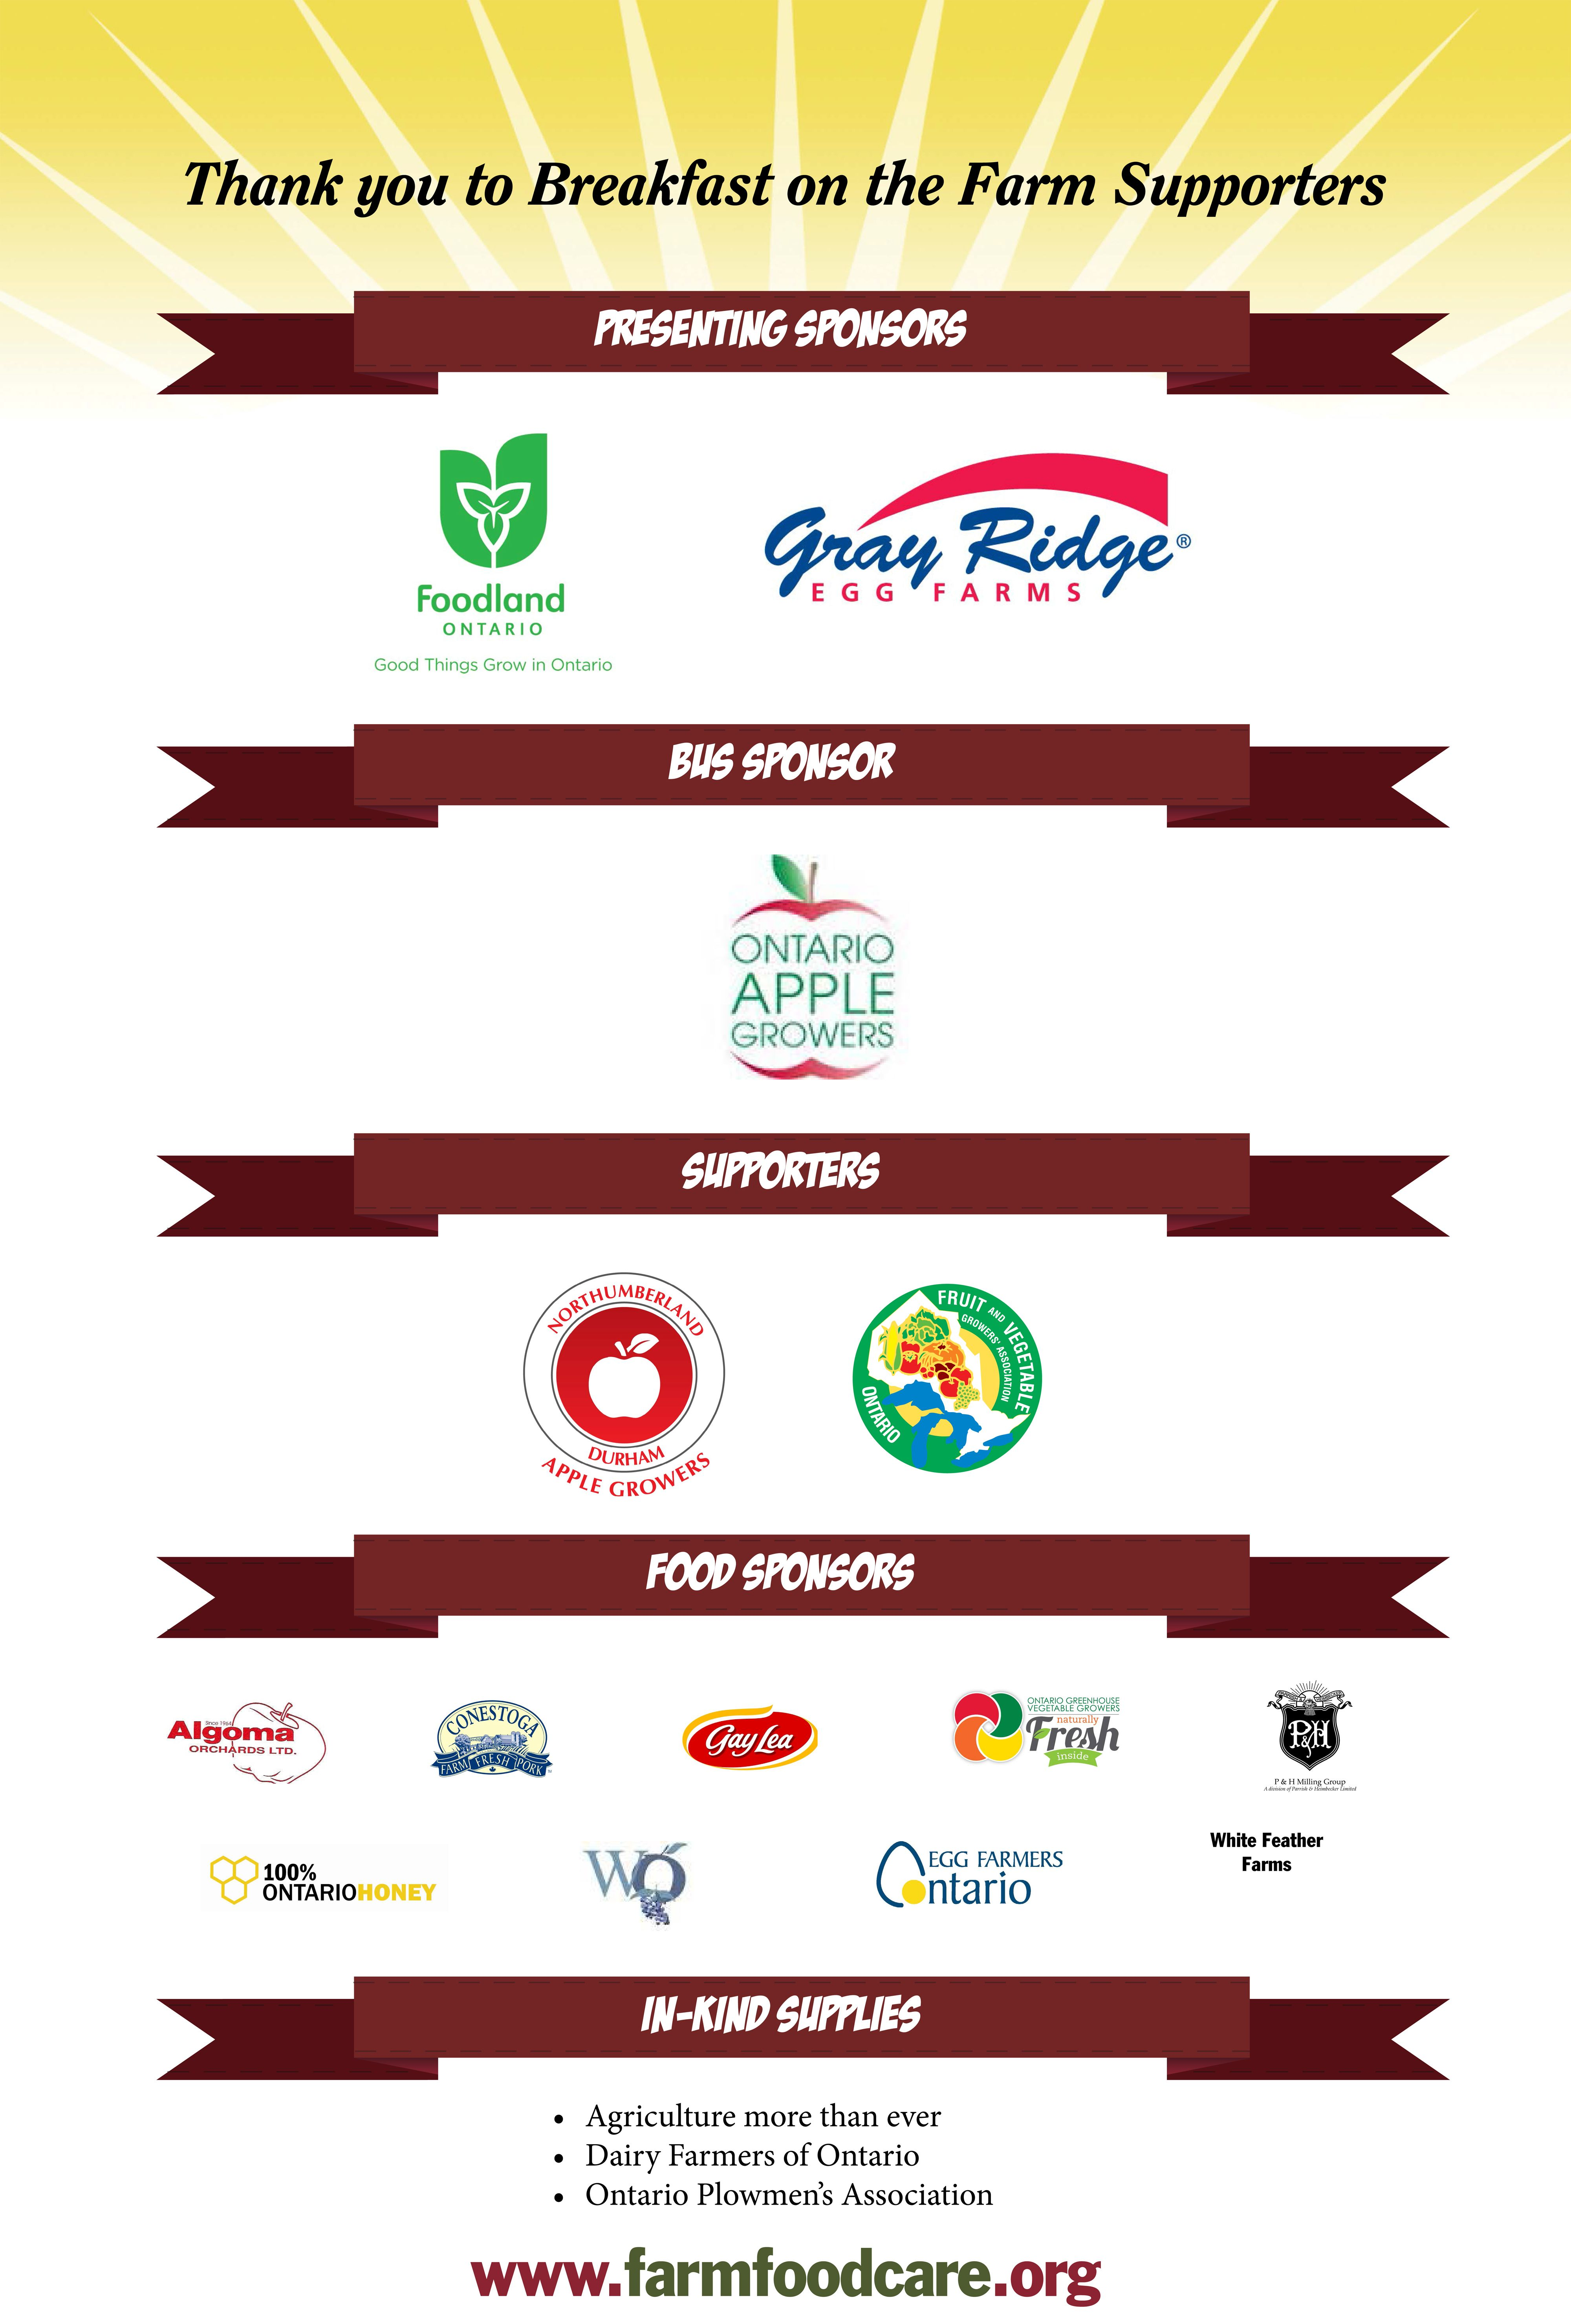 We have an amazing list of sponsors who made #FarmBkfst